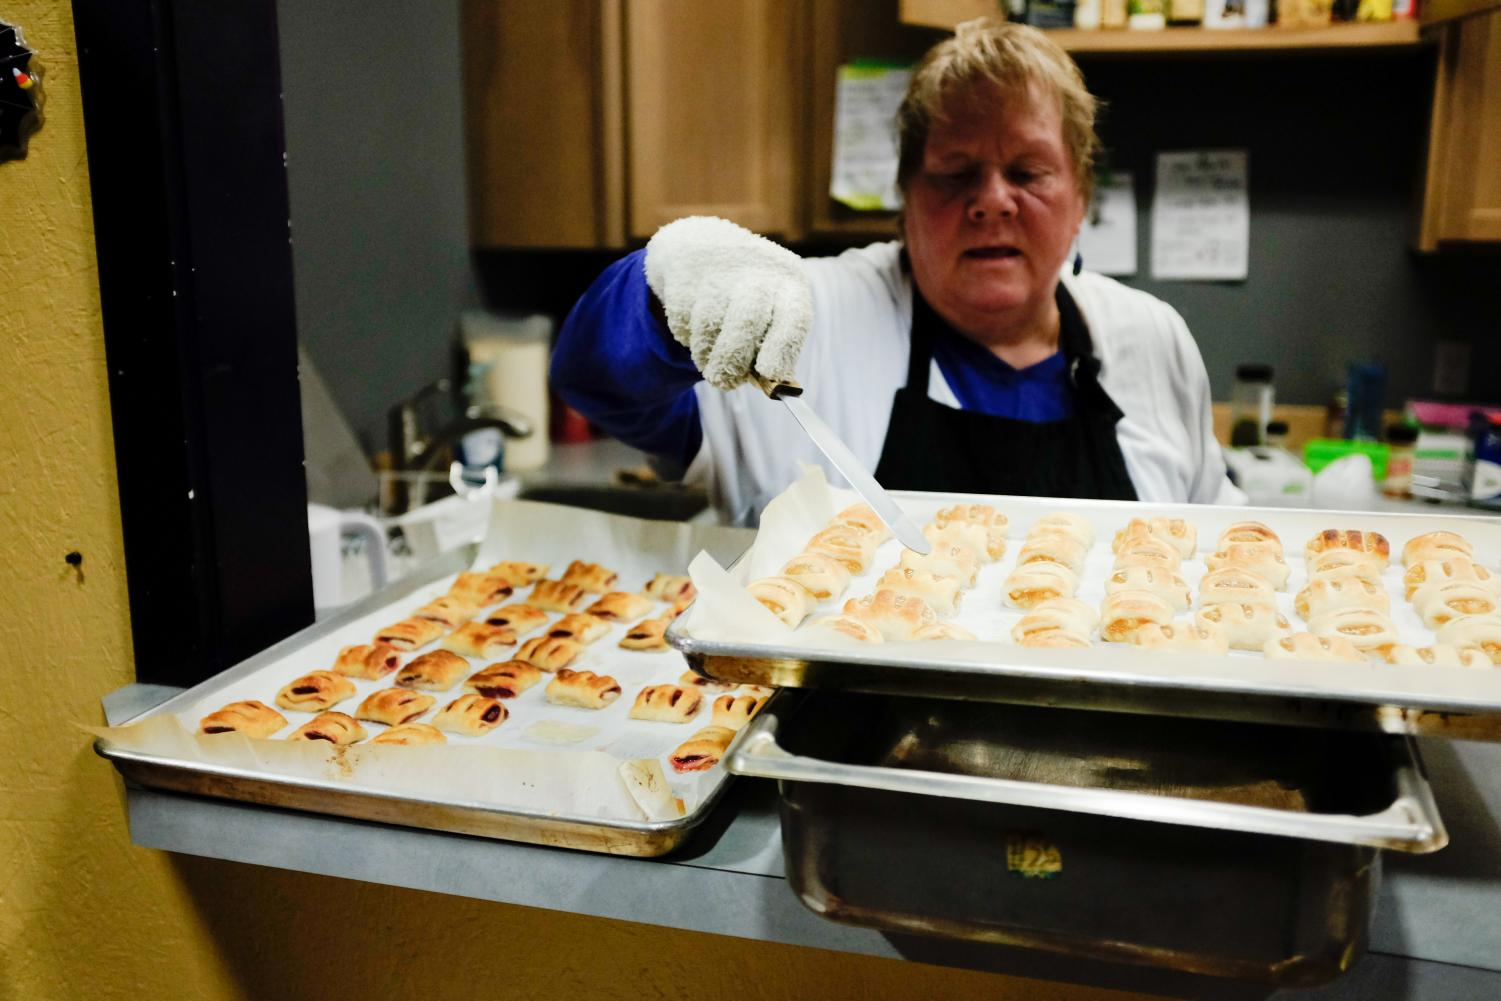 Lori Fritts, the kitchen manager at the FISH food bank, manages the hot meals that are served. She does all her cooking with the oven, crock pot and toaster pan located in their kitchen.